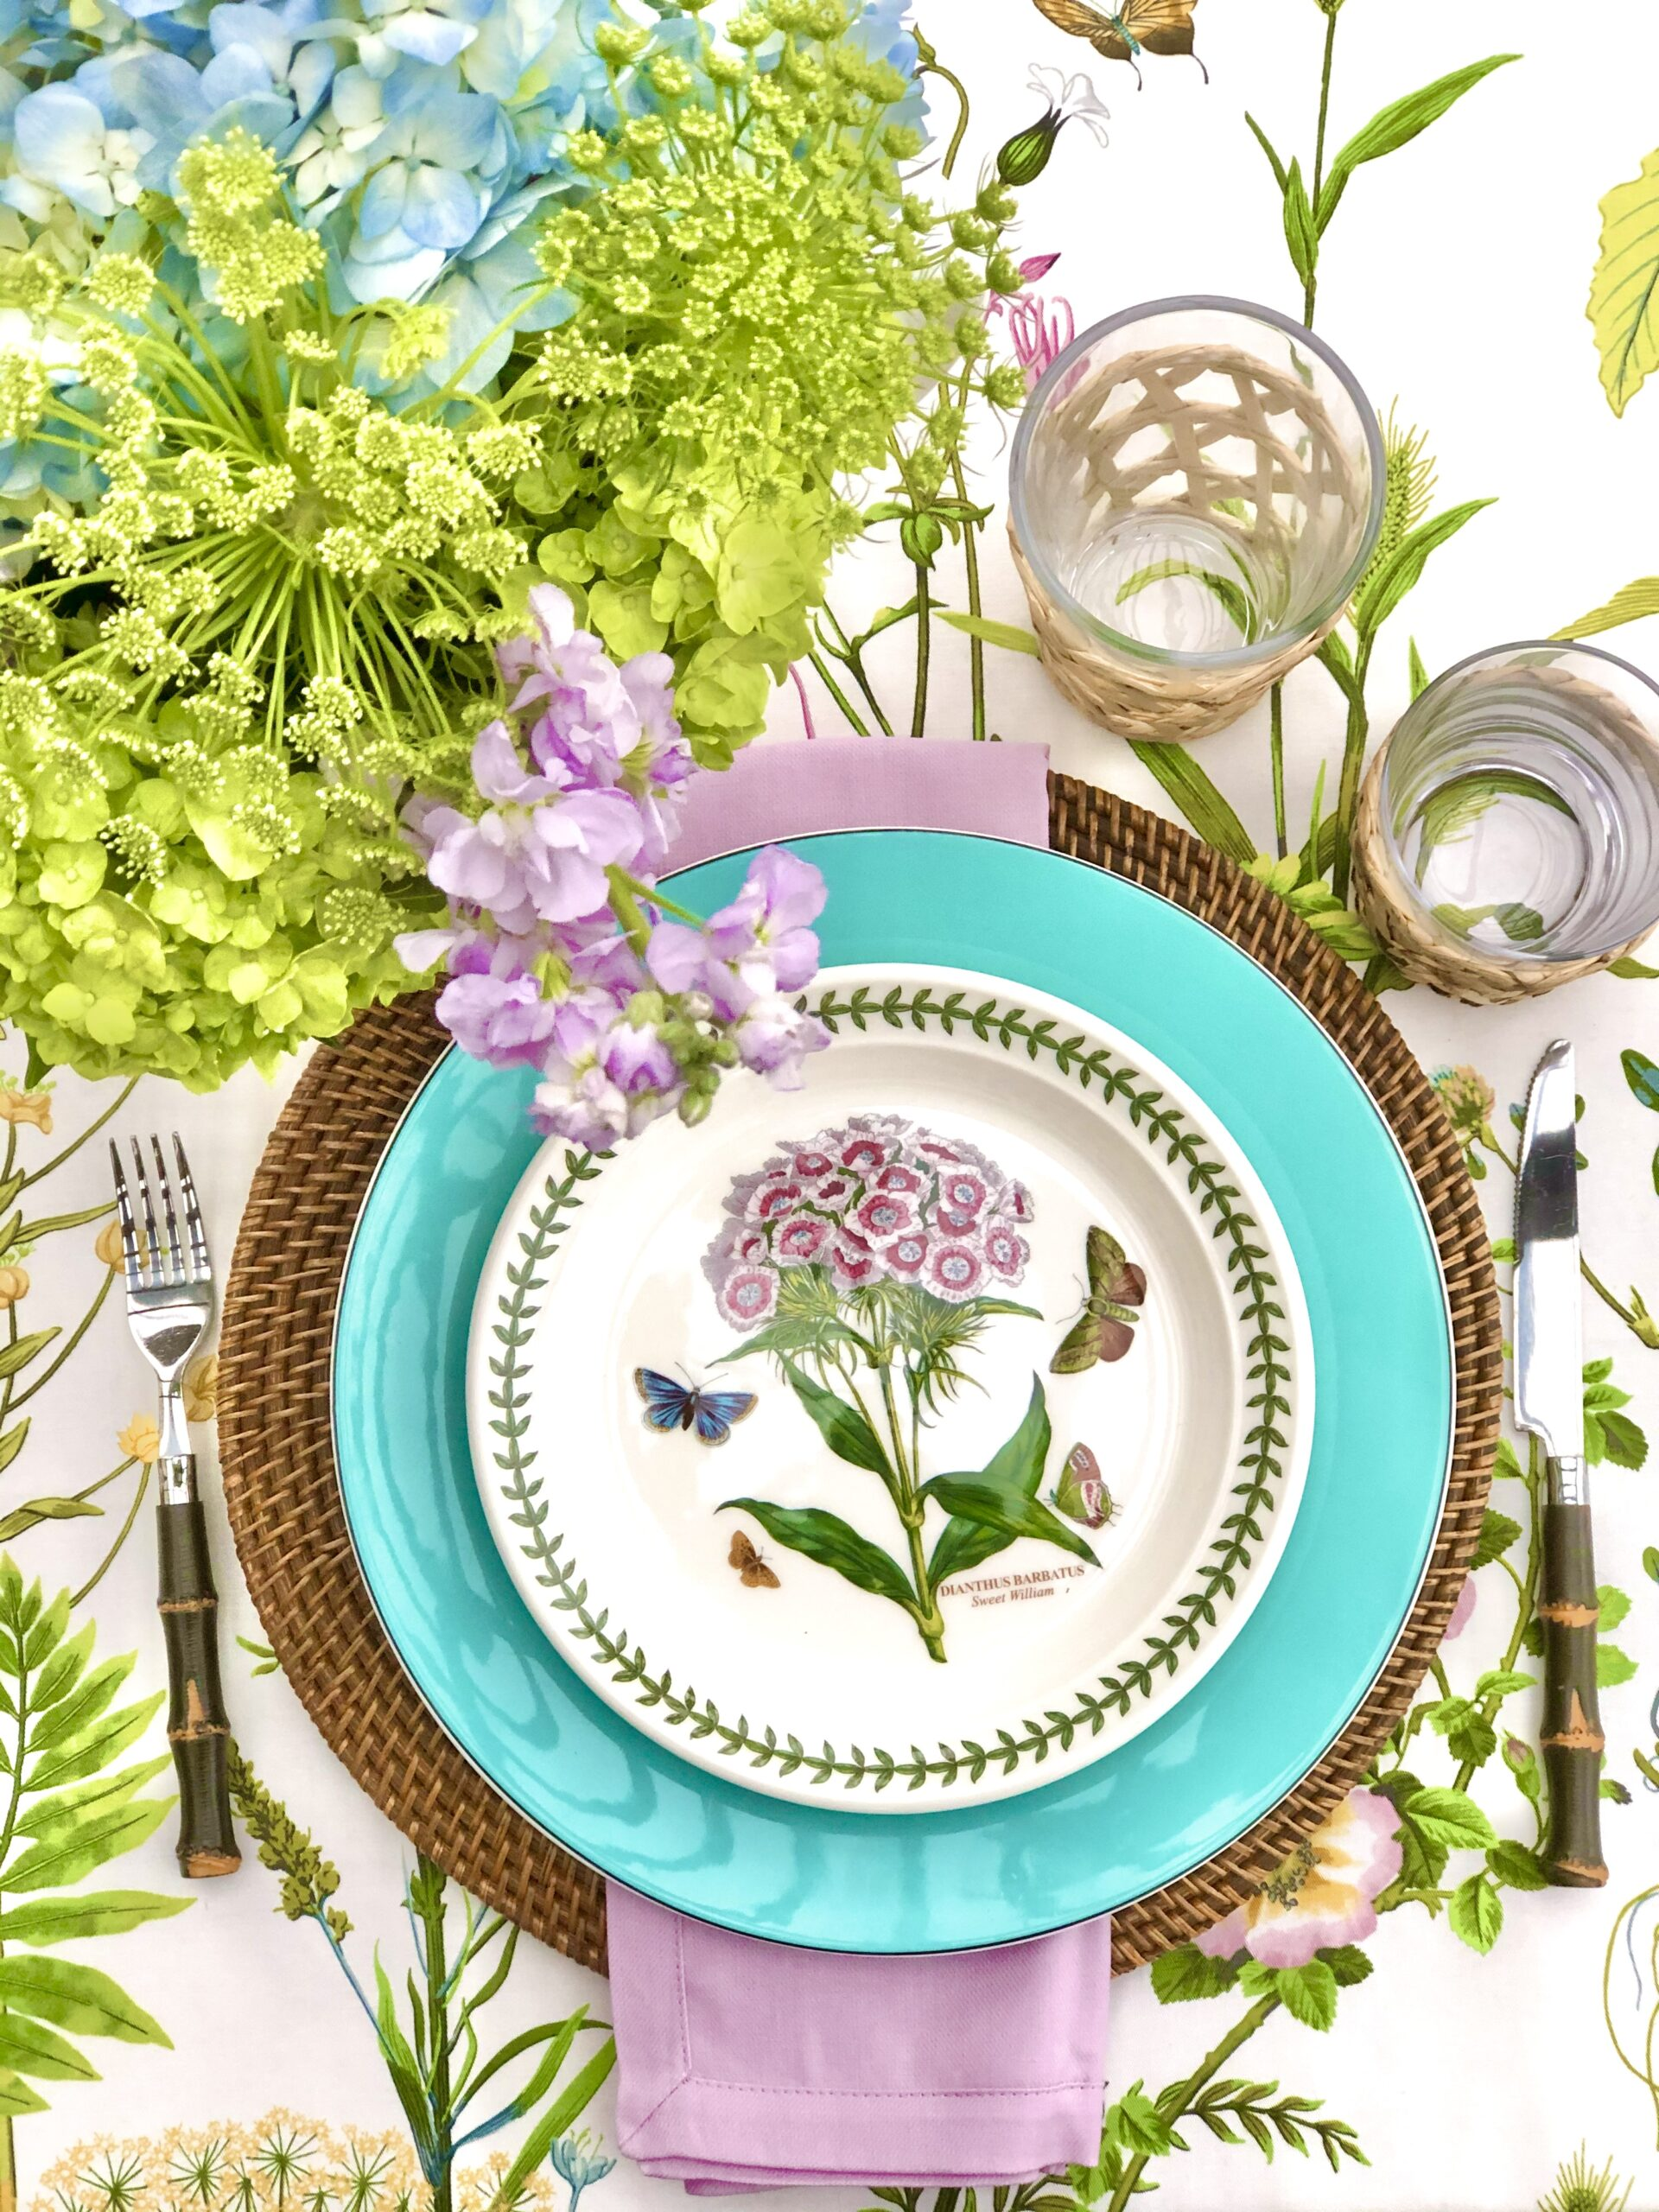 Spring place setting portmerion floral plate